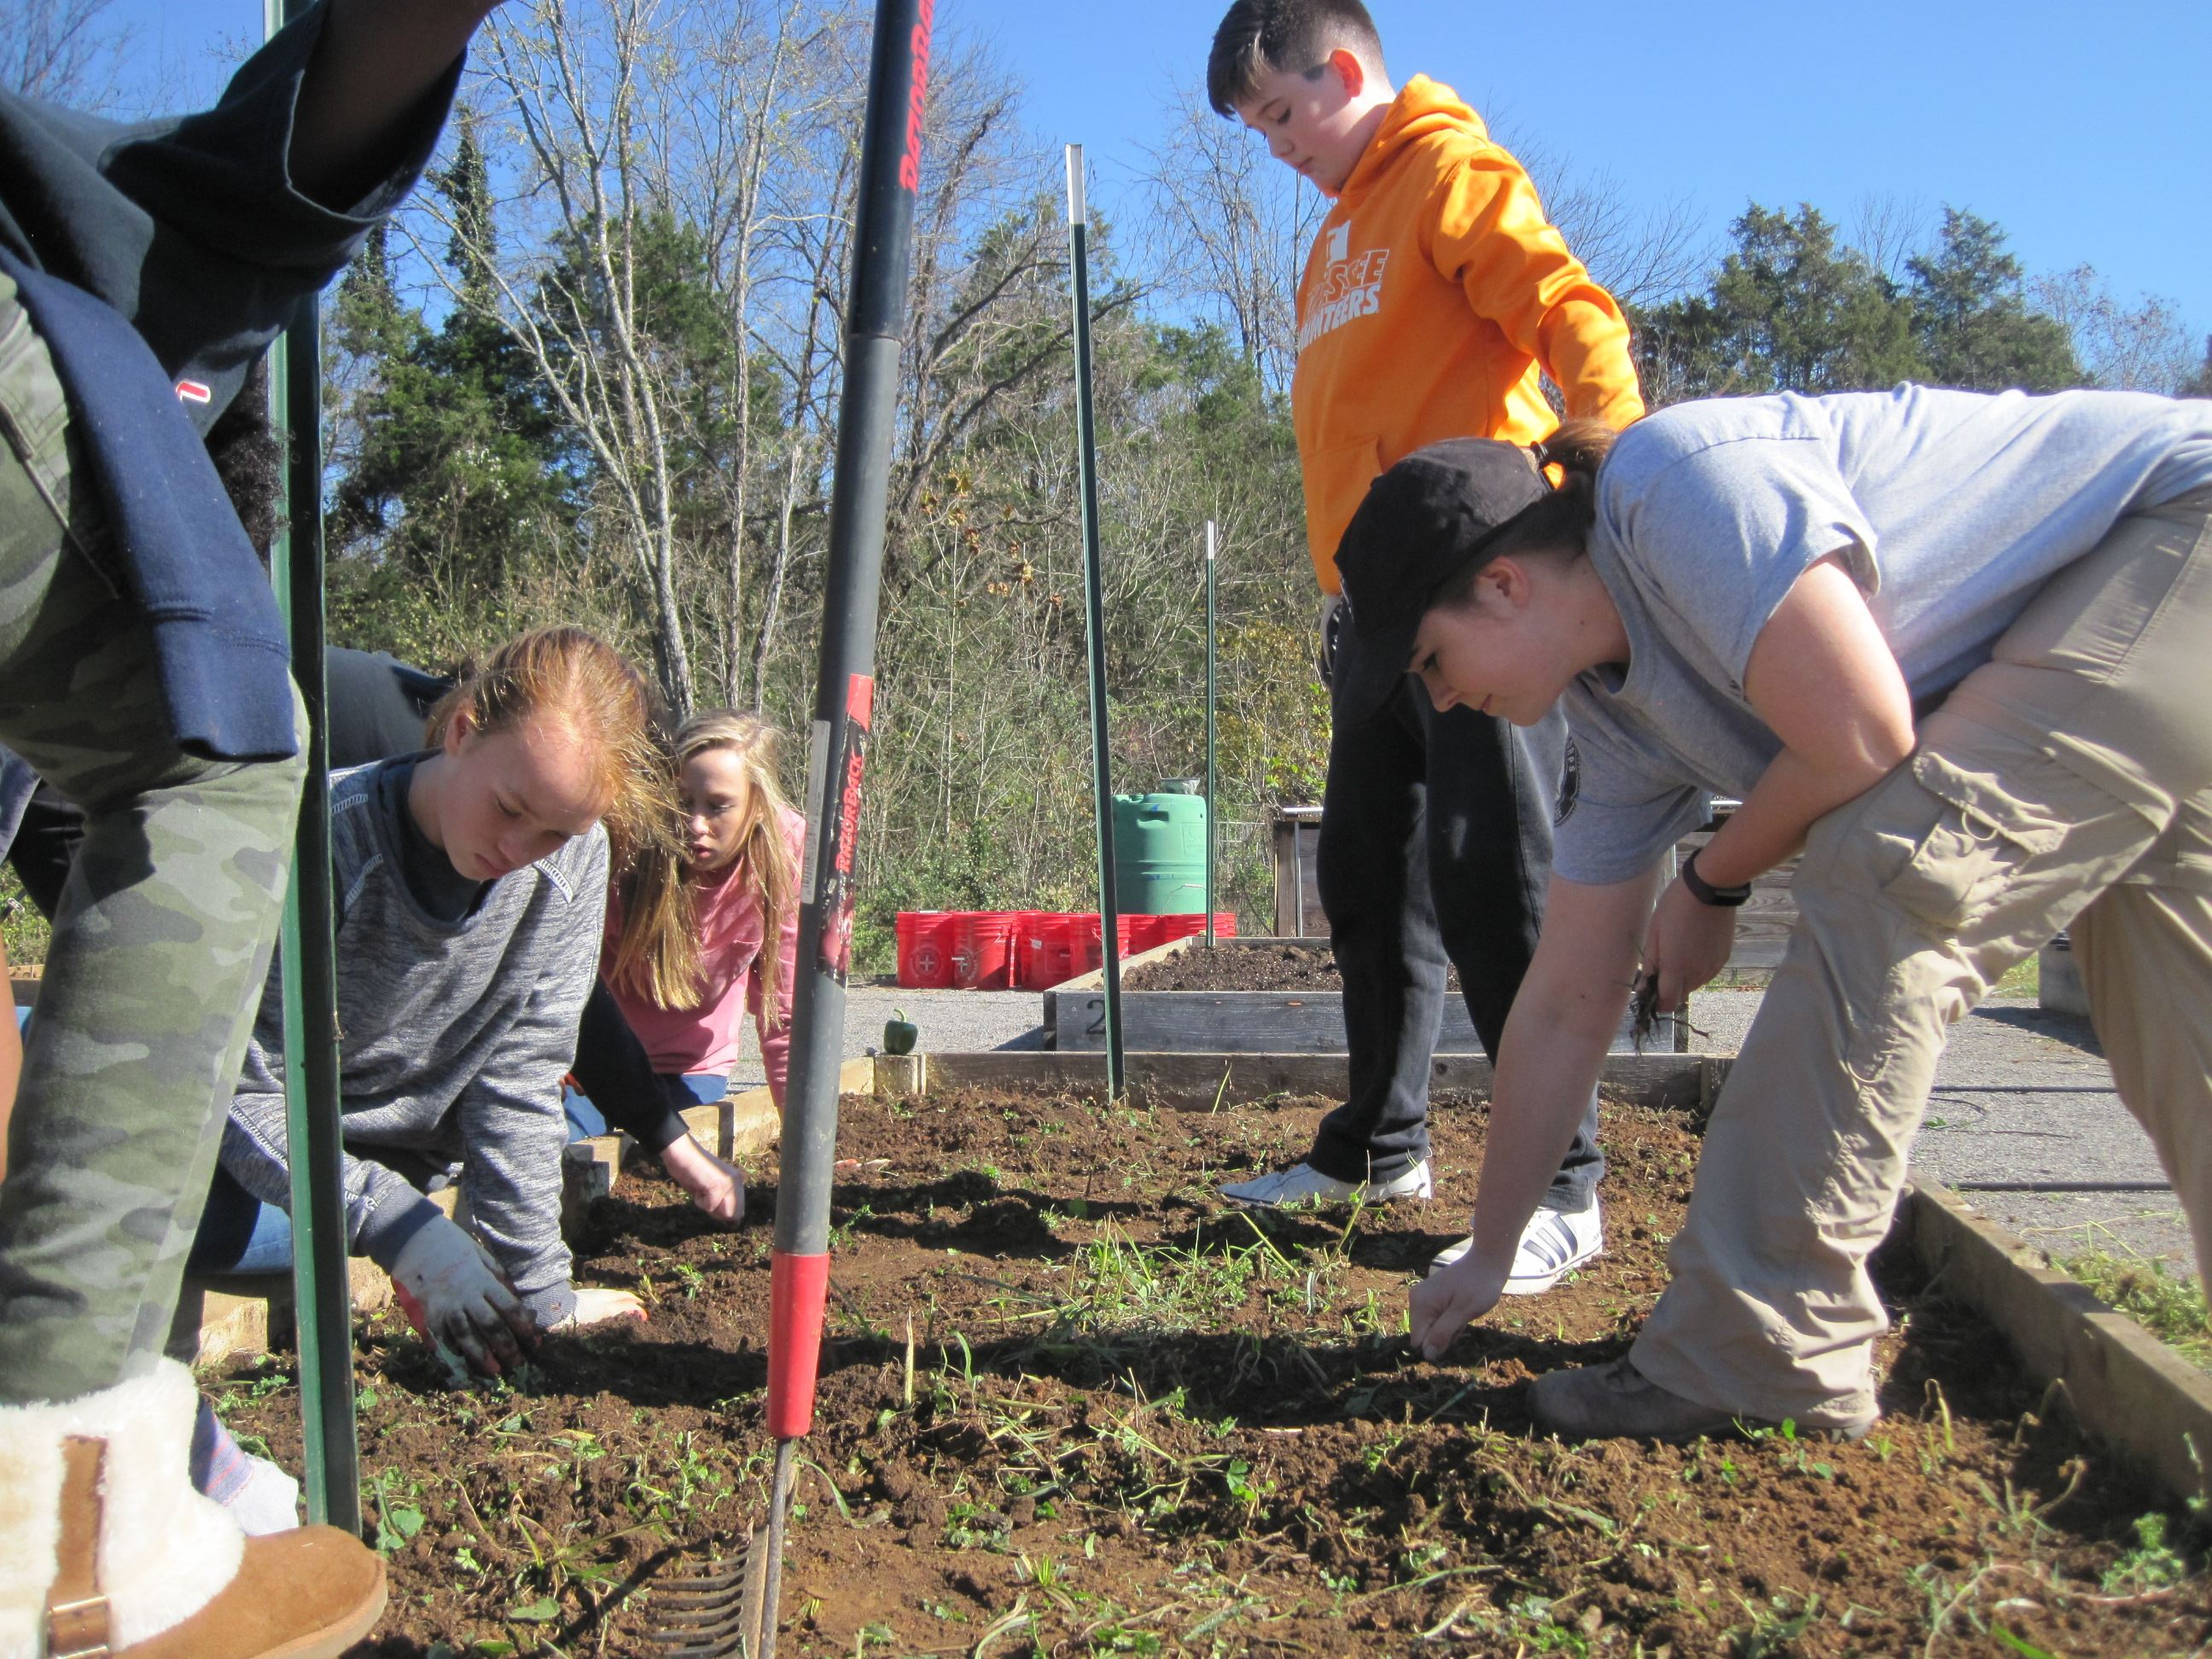 Americorps member pulling weeds with students